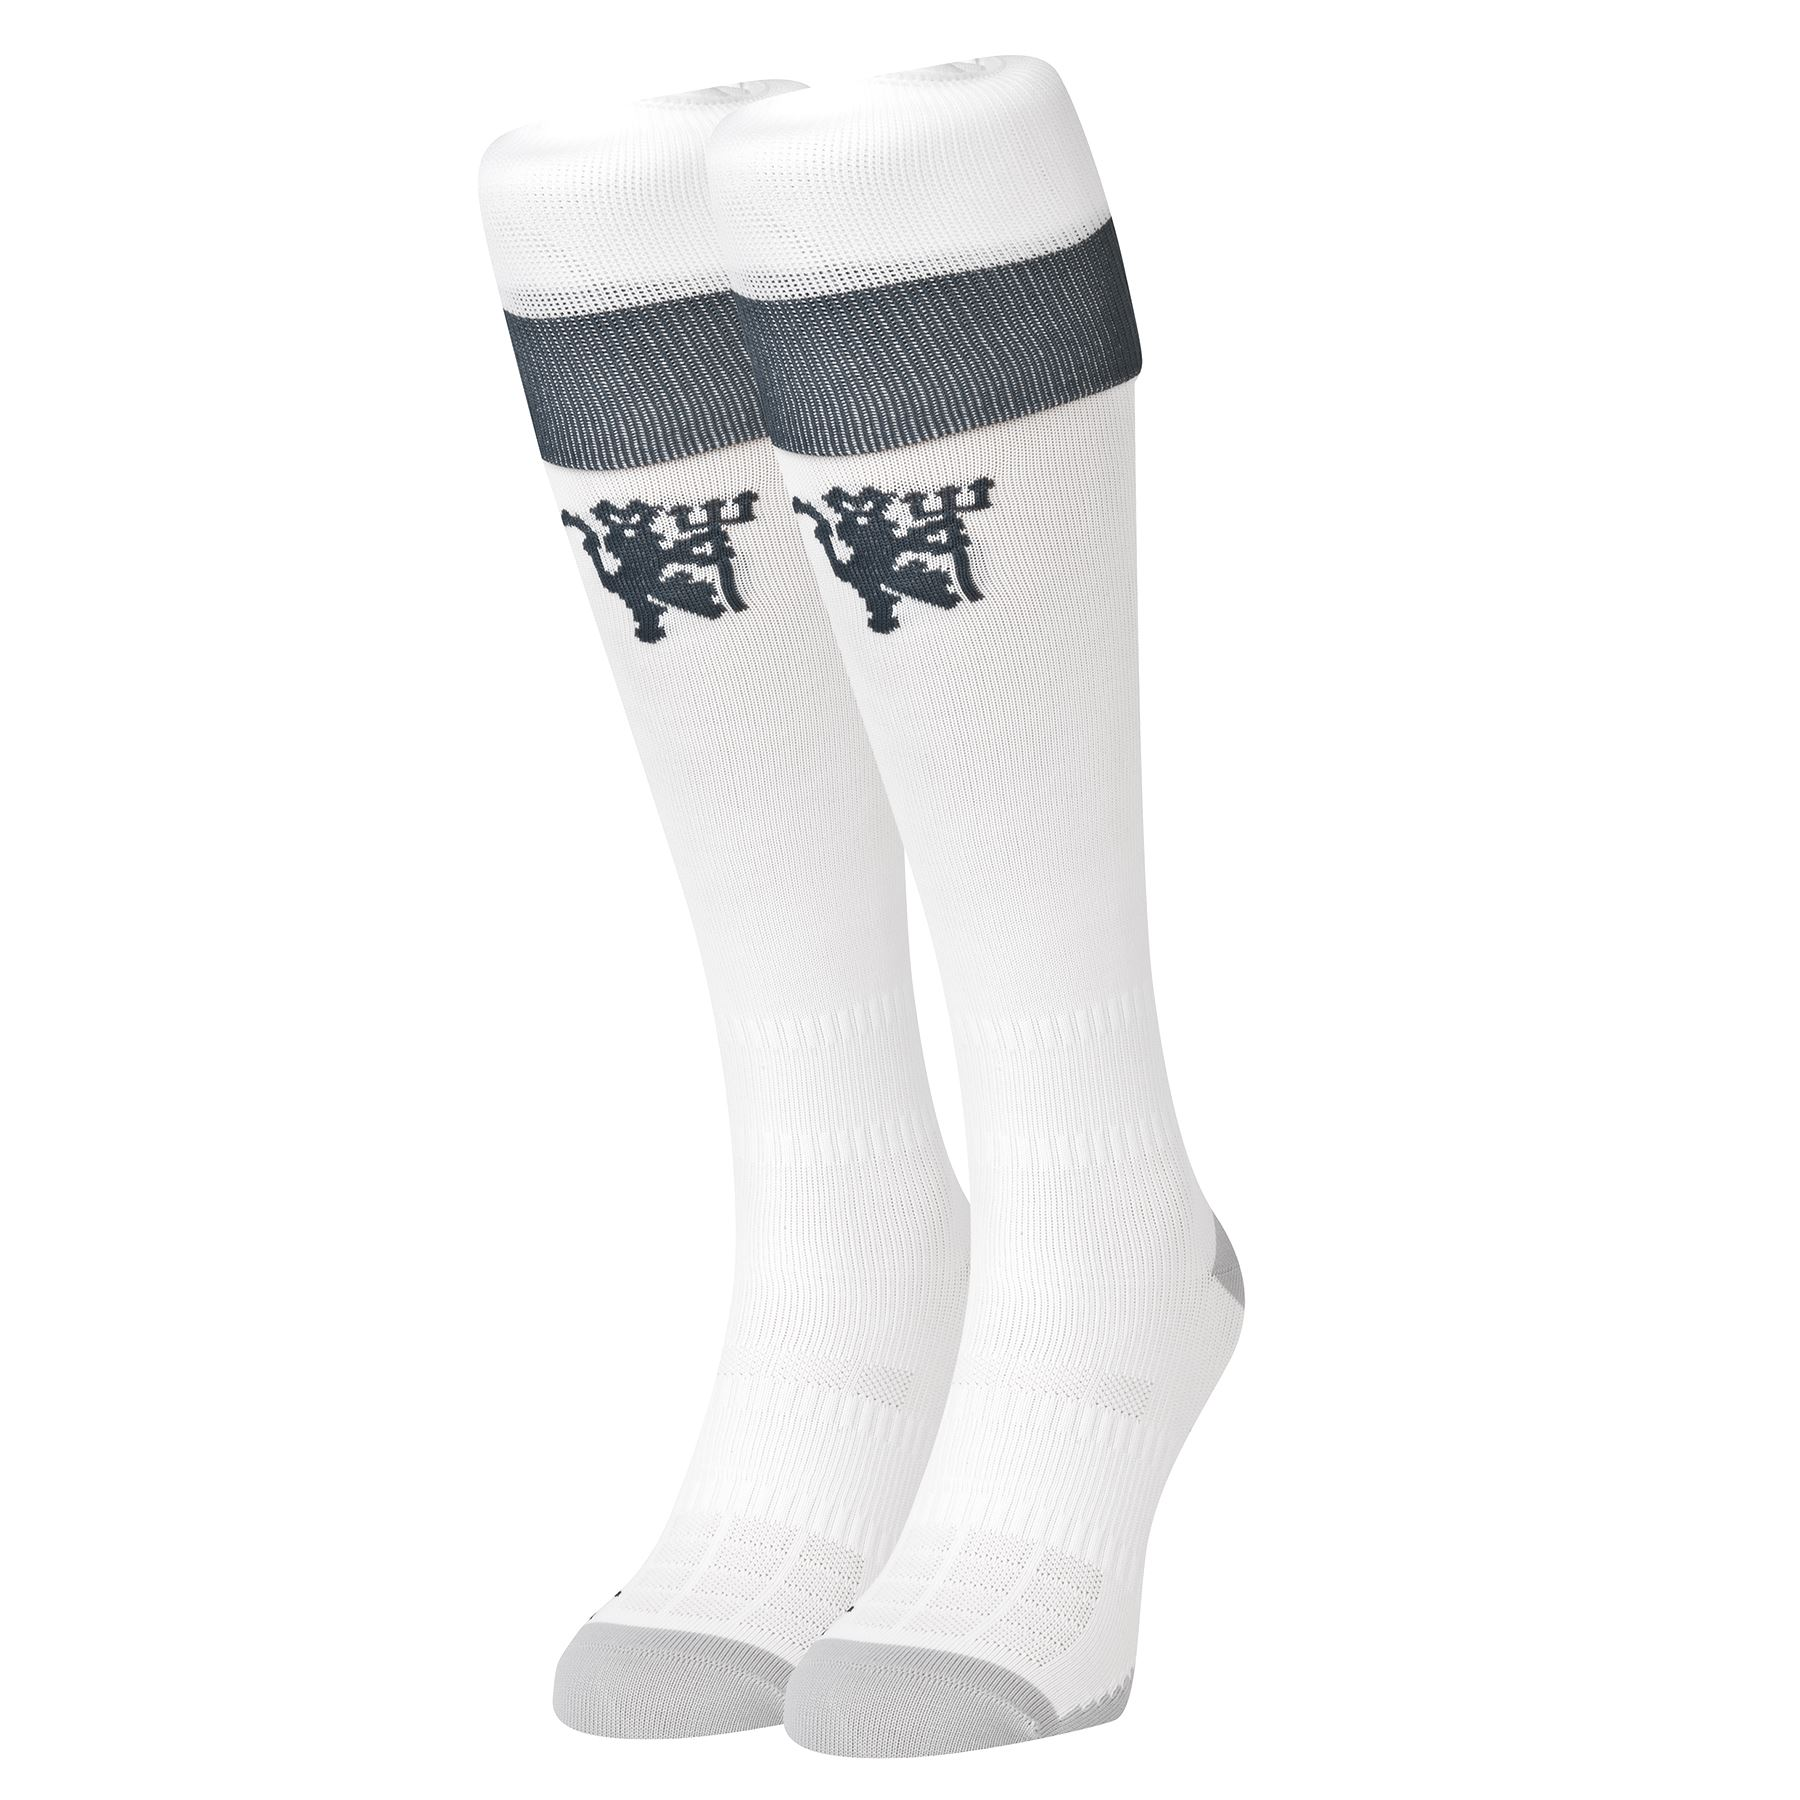 adidas hommes football manchester united 3 me chaussettes longues 2016 17 blanc ebay. Black Bedroom Furniture Sets. Home Design Ideas